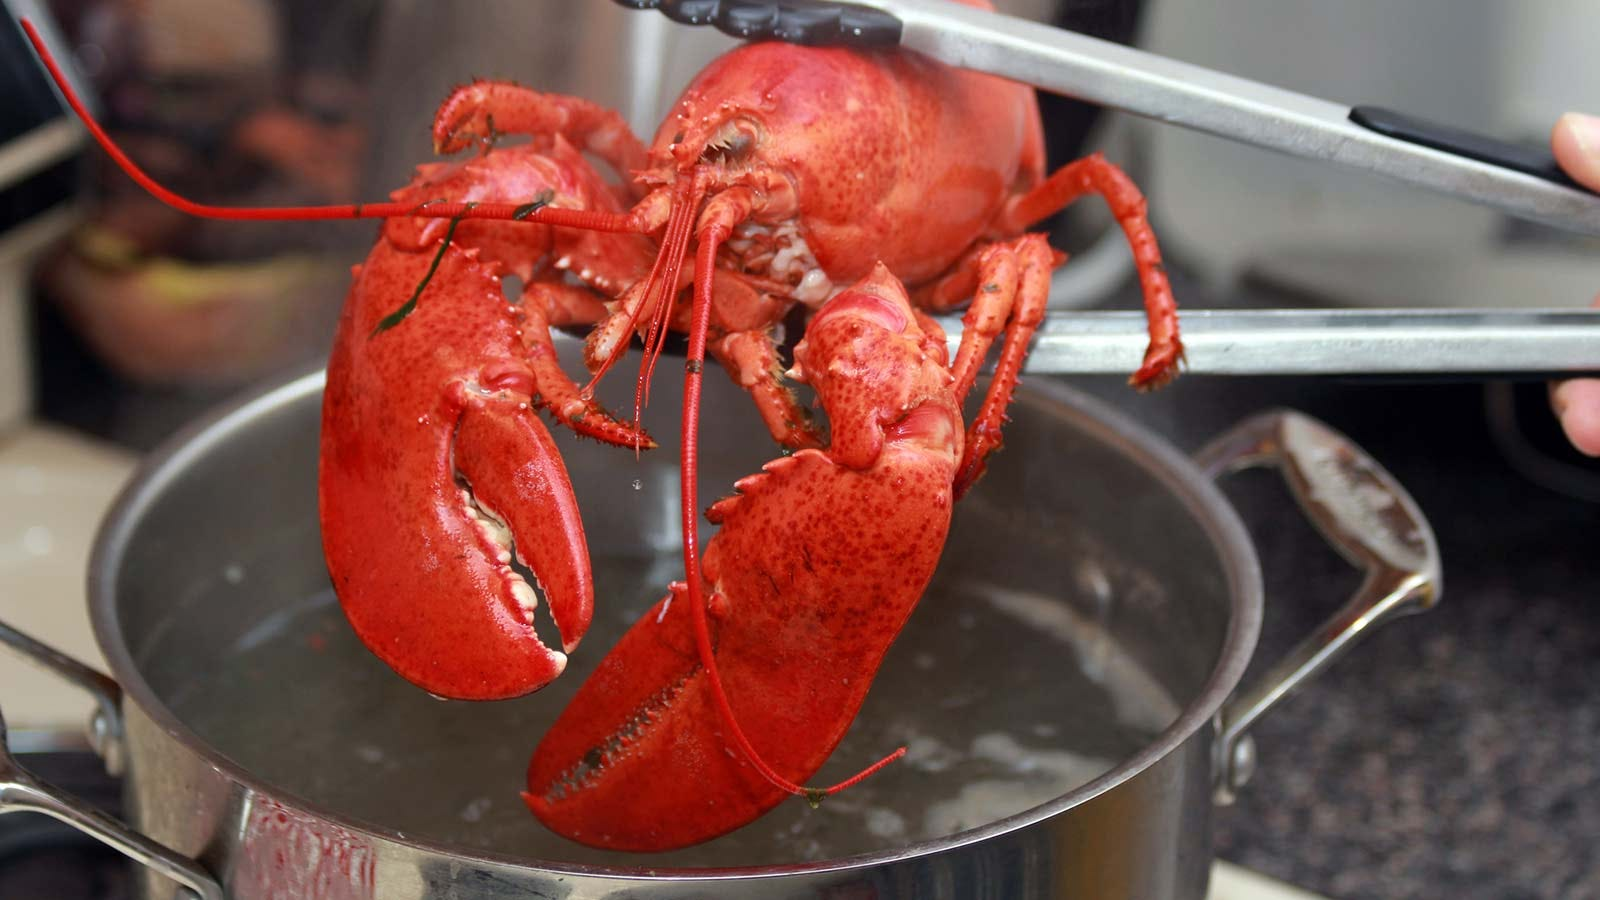 A lobster being held over a pot of boiling water with tongs.